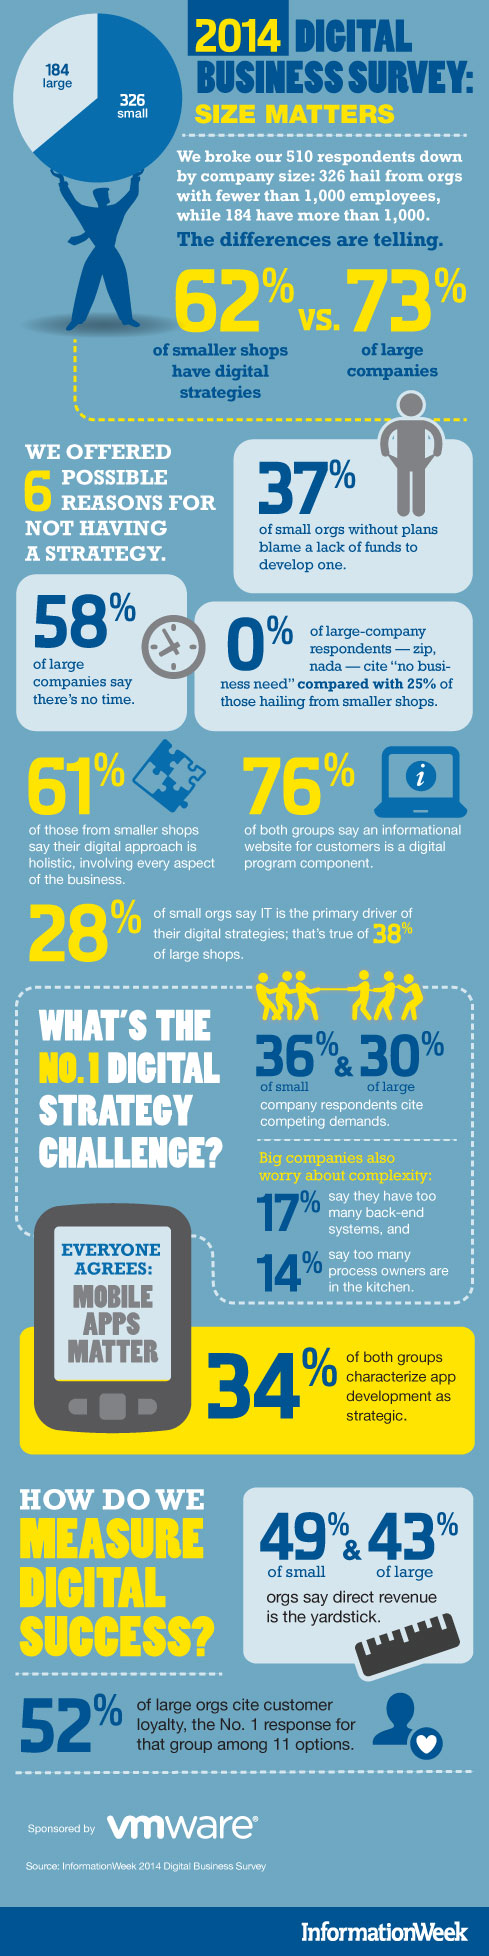 2014_Digital_Business_Survey